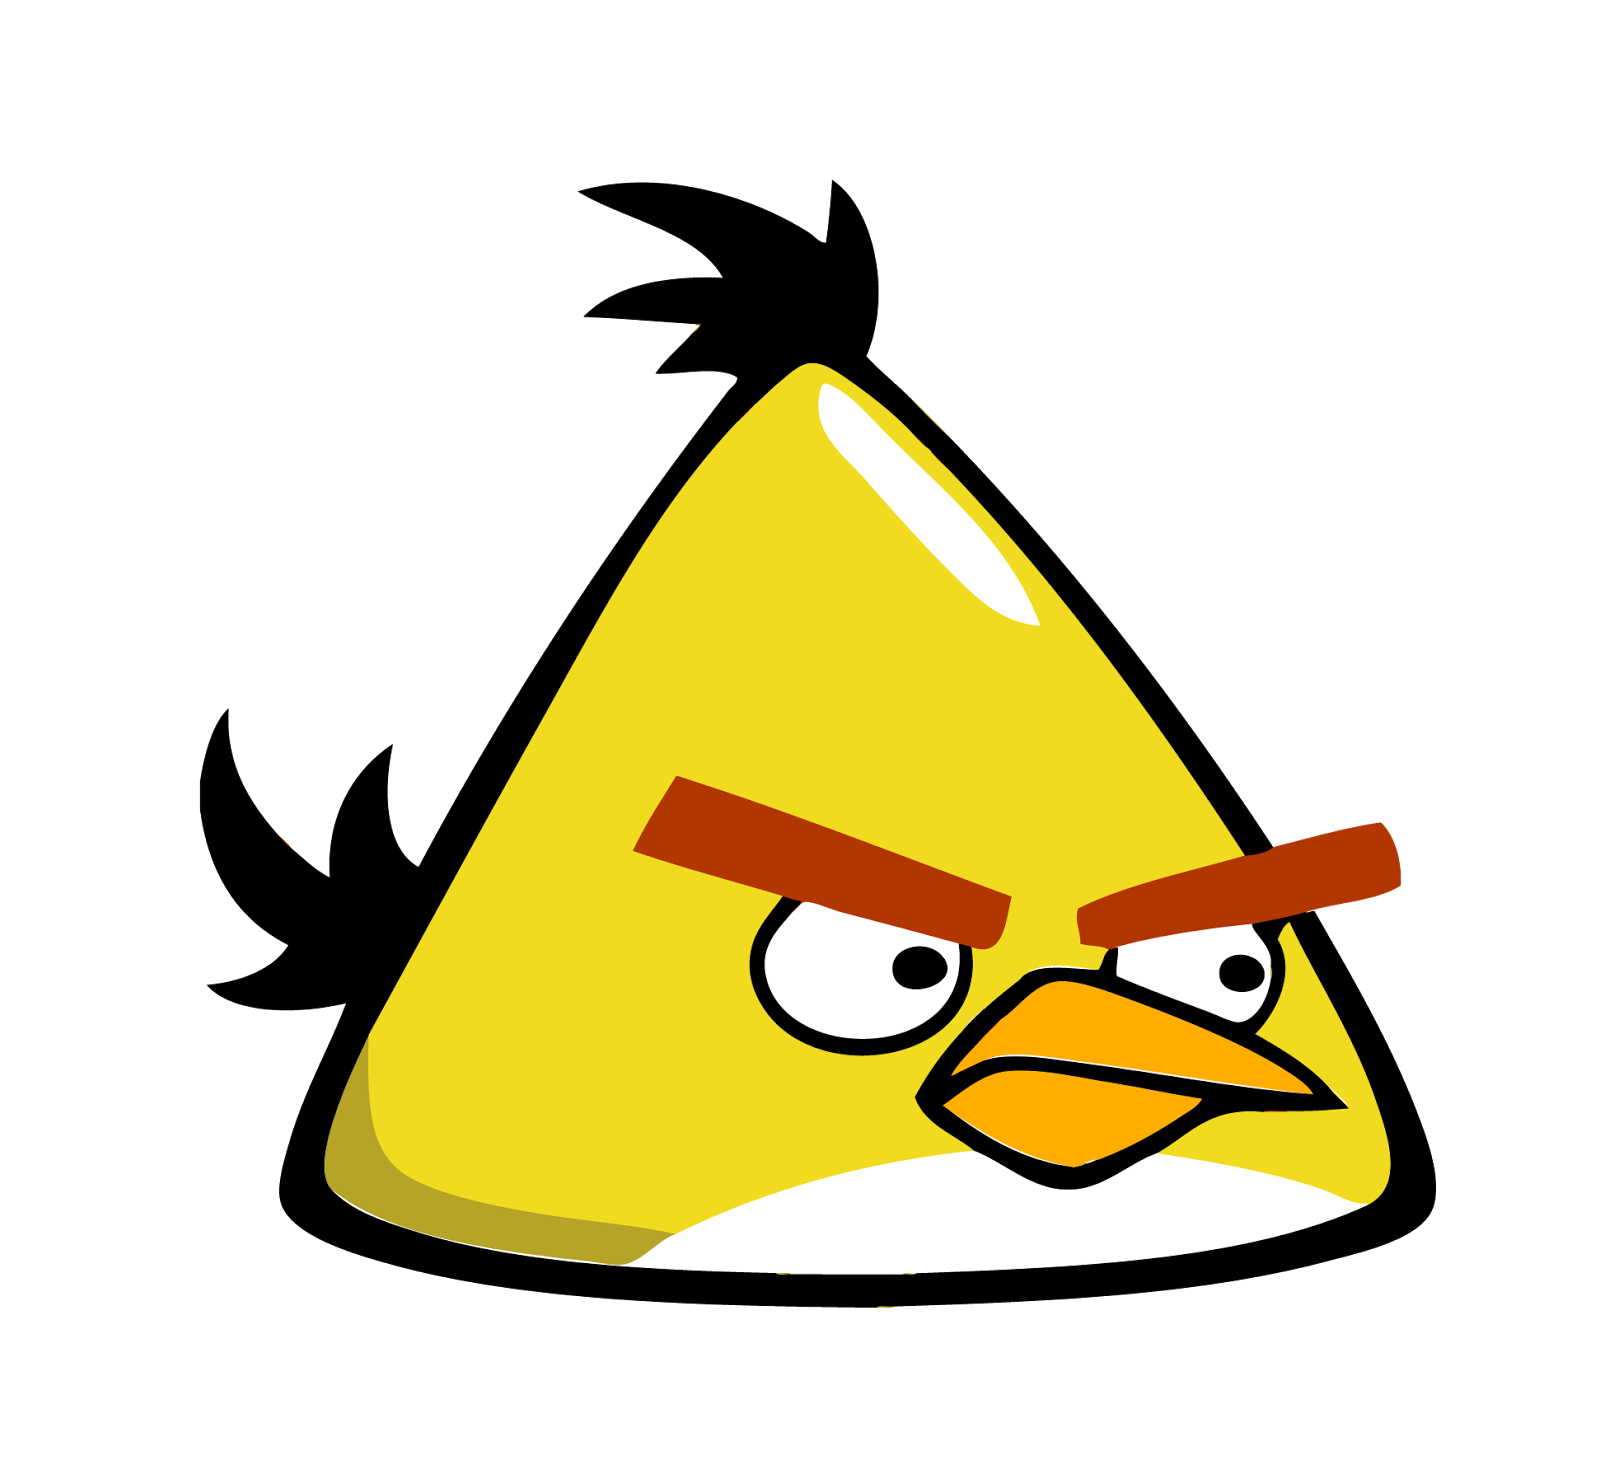 Mad Clipart Angry Bird Mad Angry Bird Transparent Free For